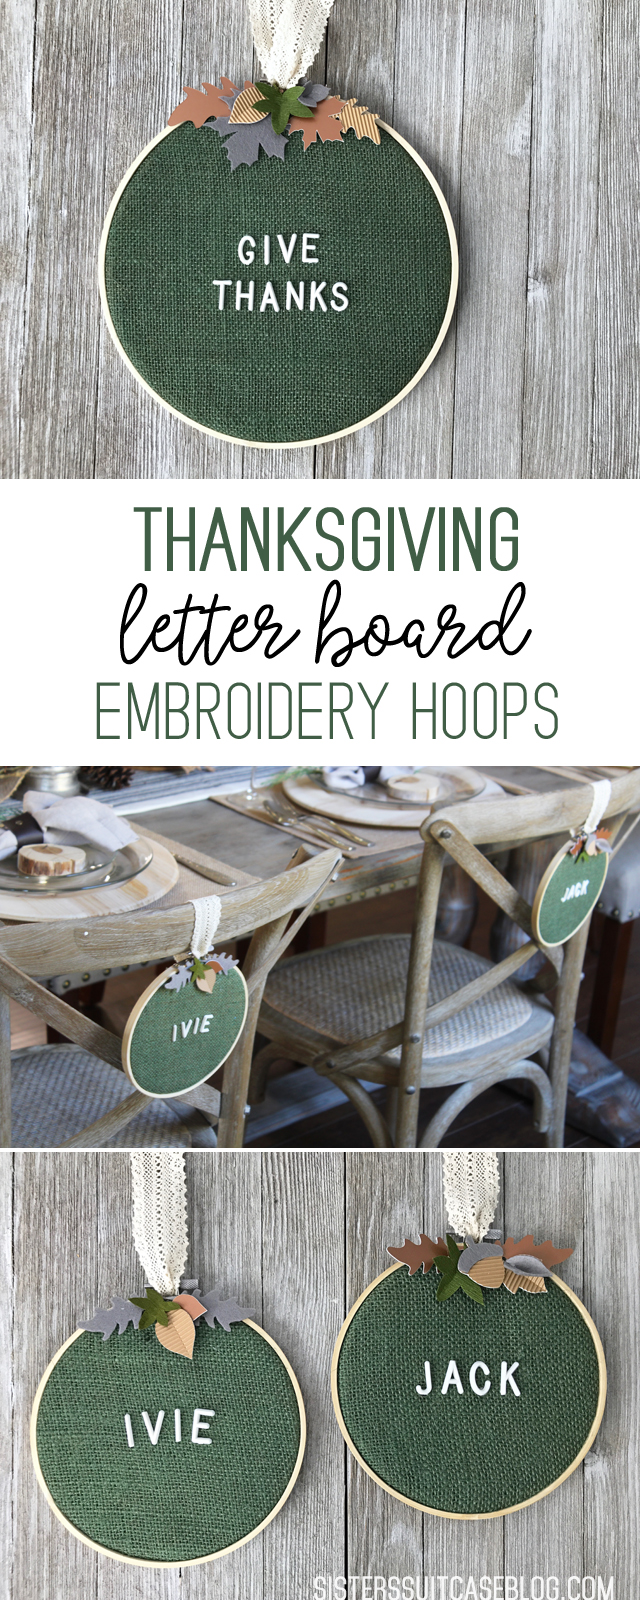 Thanksgiving Letter Board Embroidery Hoops